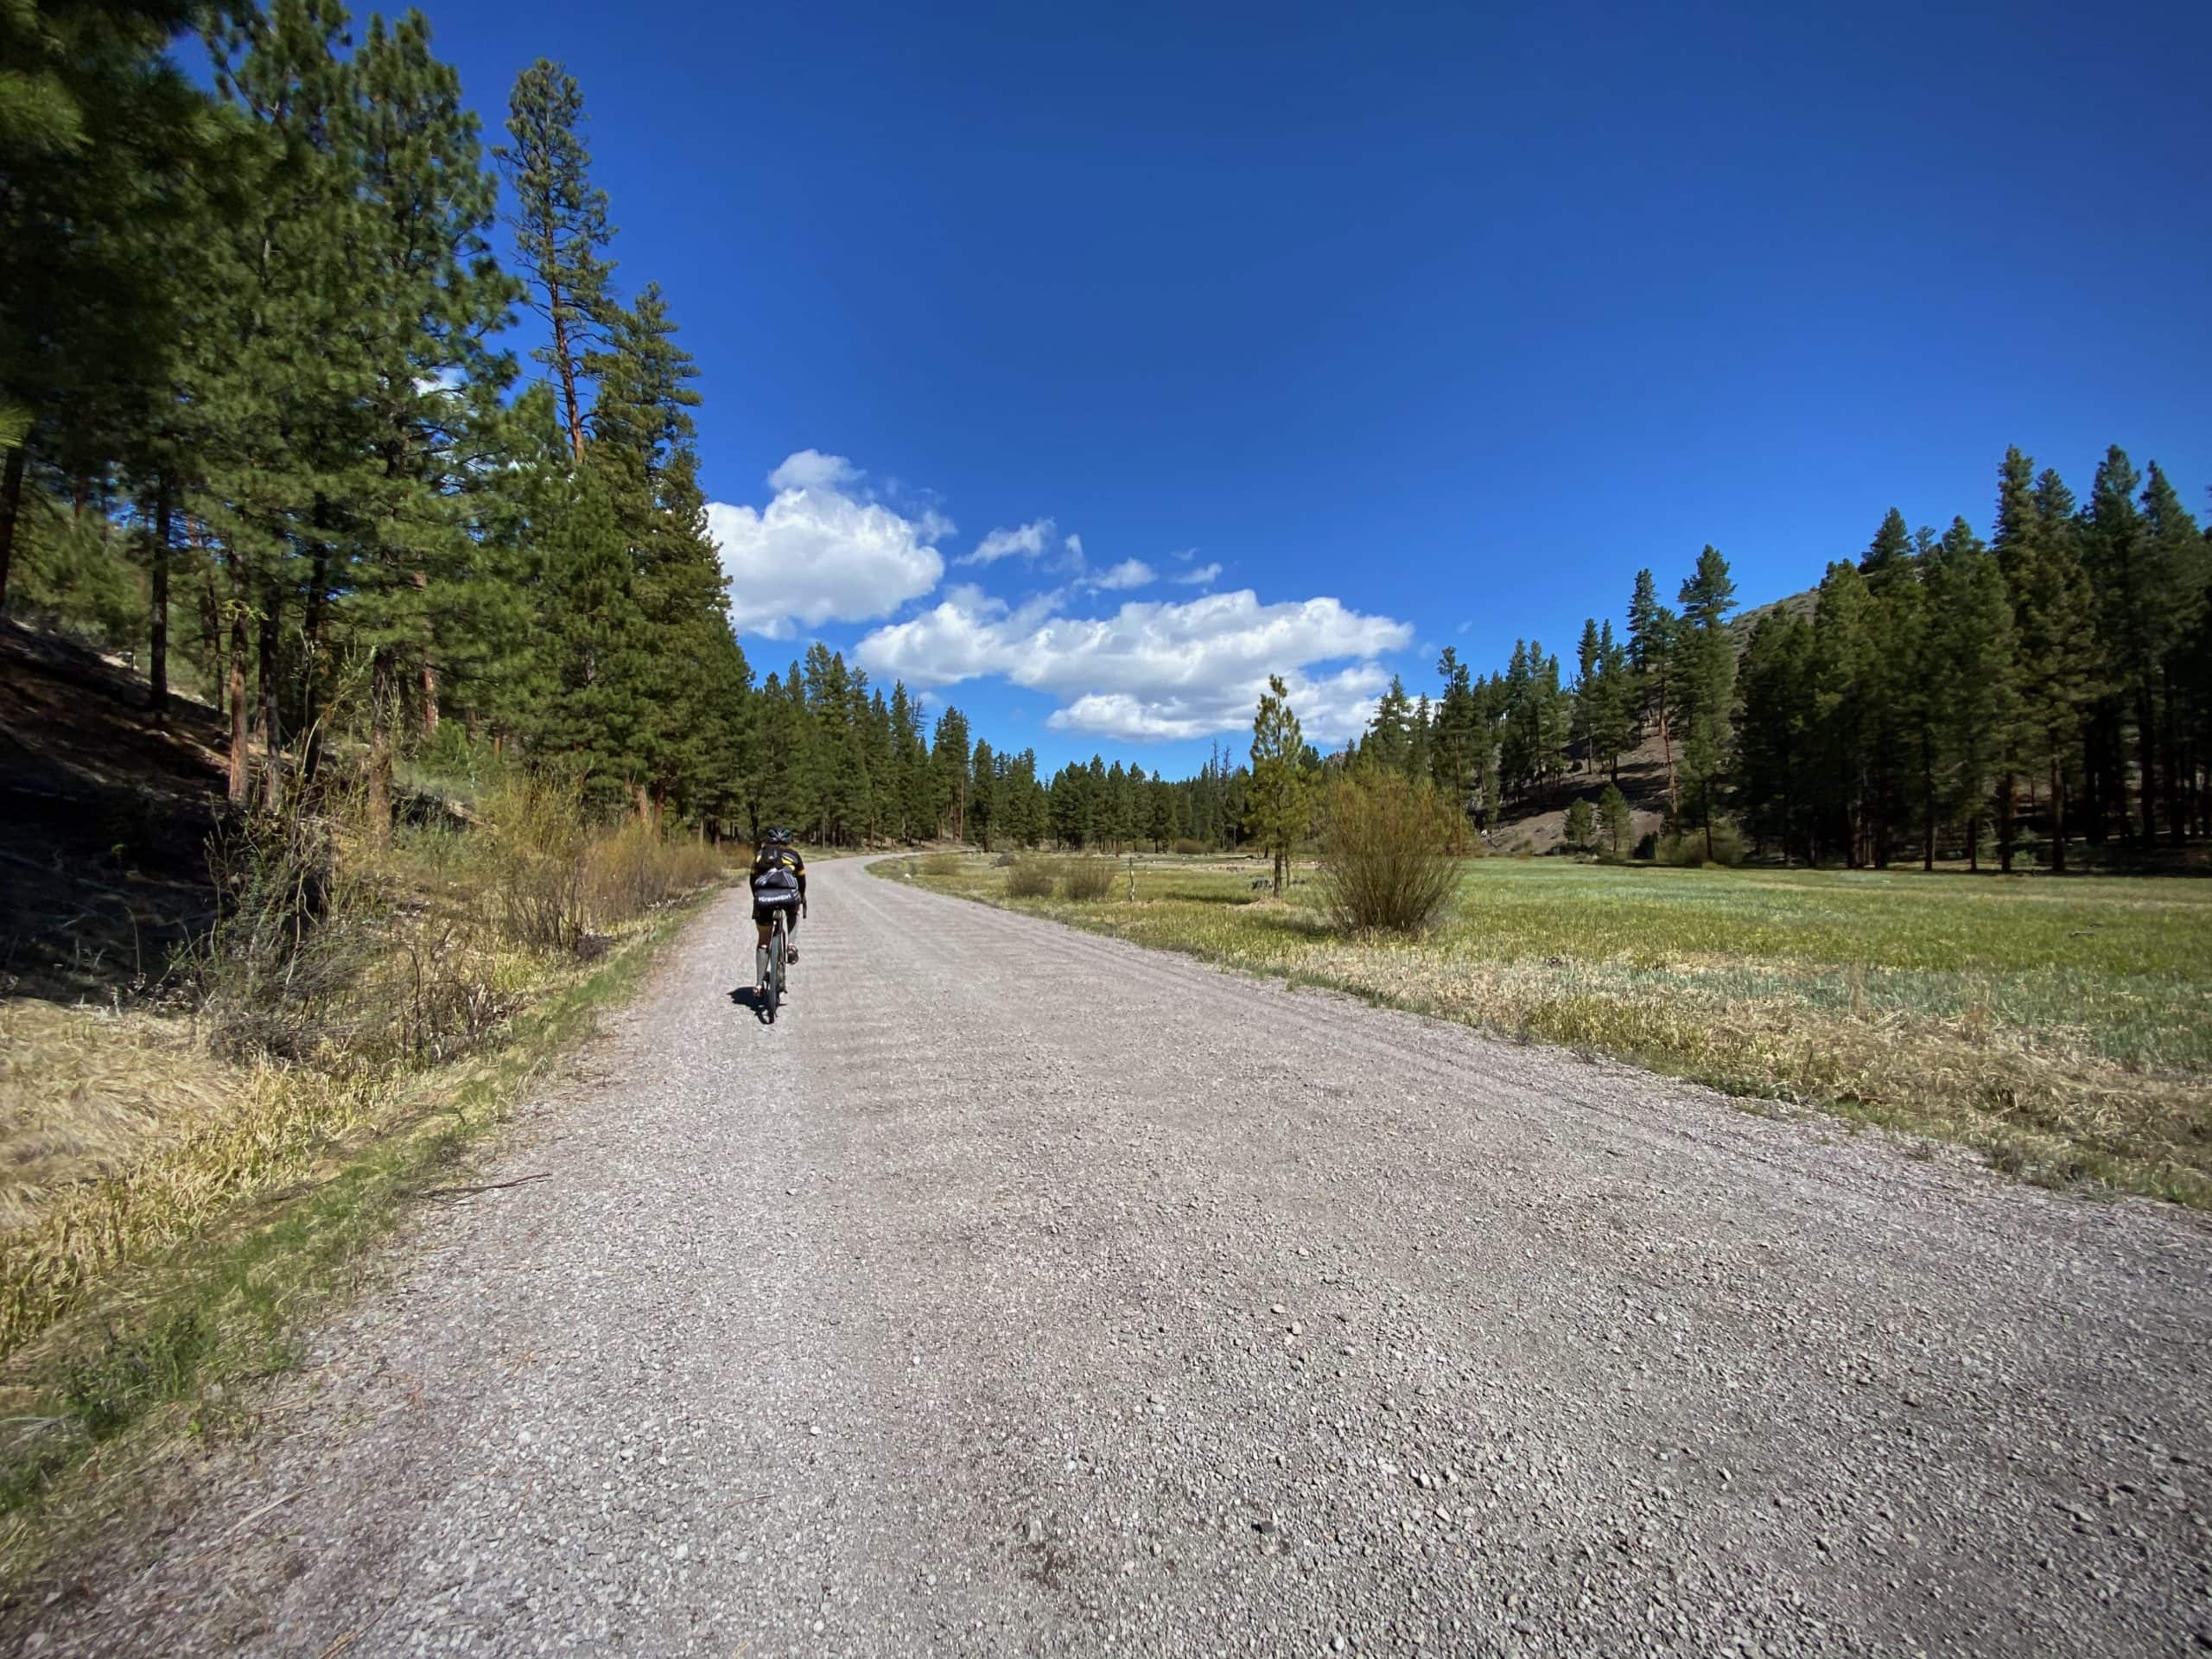 Gravel Girl riding bike next to Sawmill Creek in the Ochoco National forest.